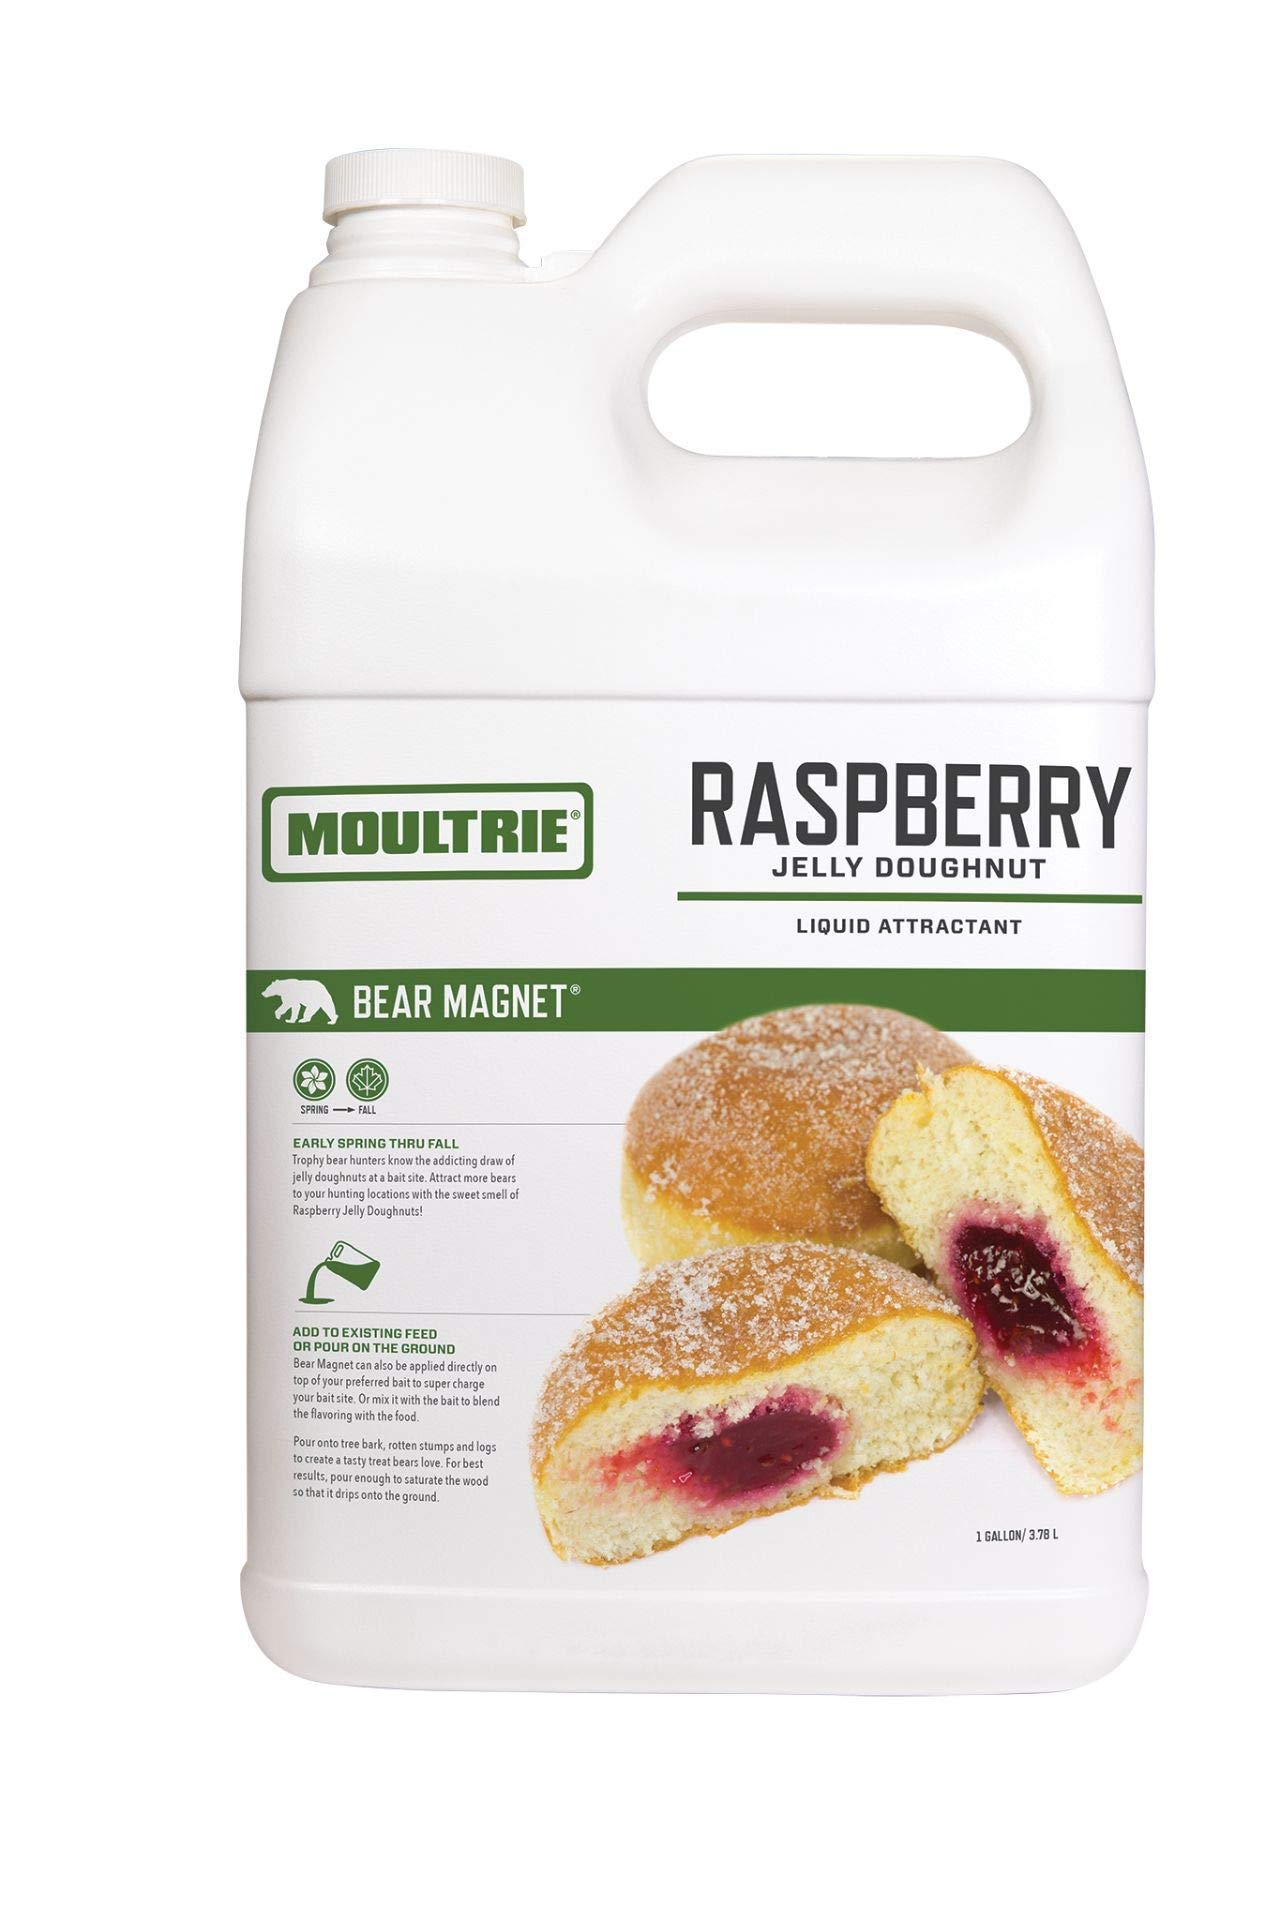 Moultrie Bear Magnet Attractant - Raspberry Jelly Doughnut by Moultrie